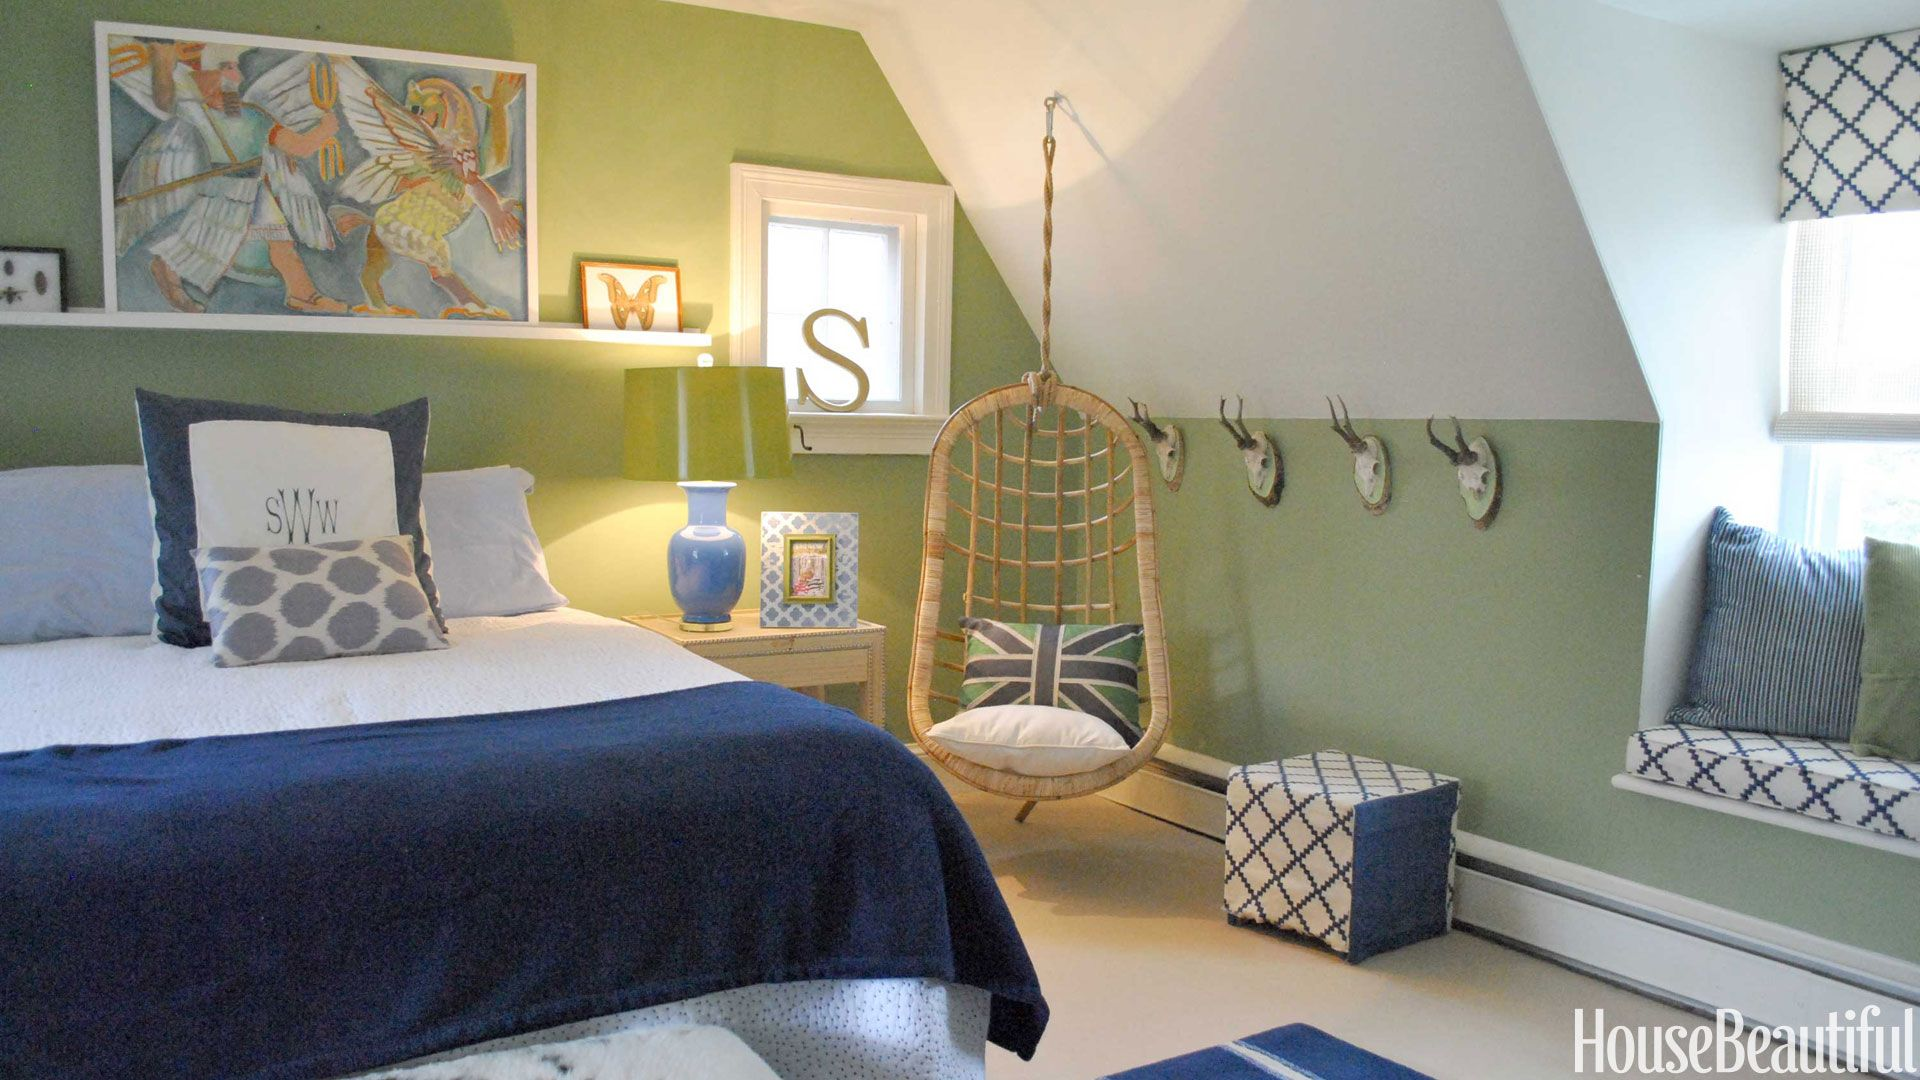 20 Kids Bedroom Decor Ideas Cool Room Designs for Girls and Boys